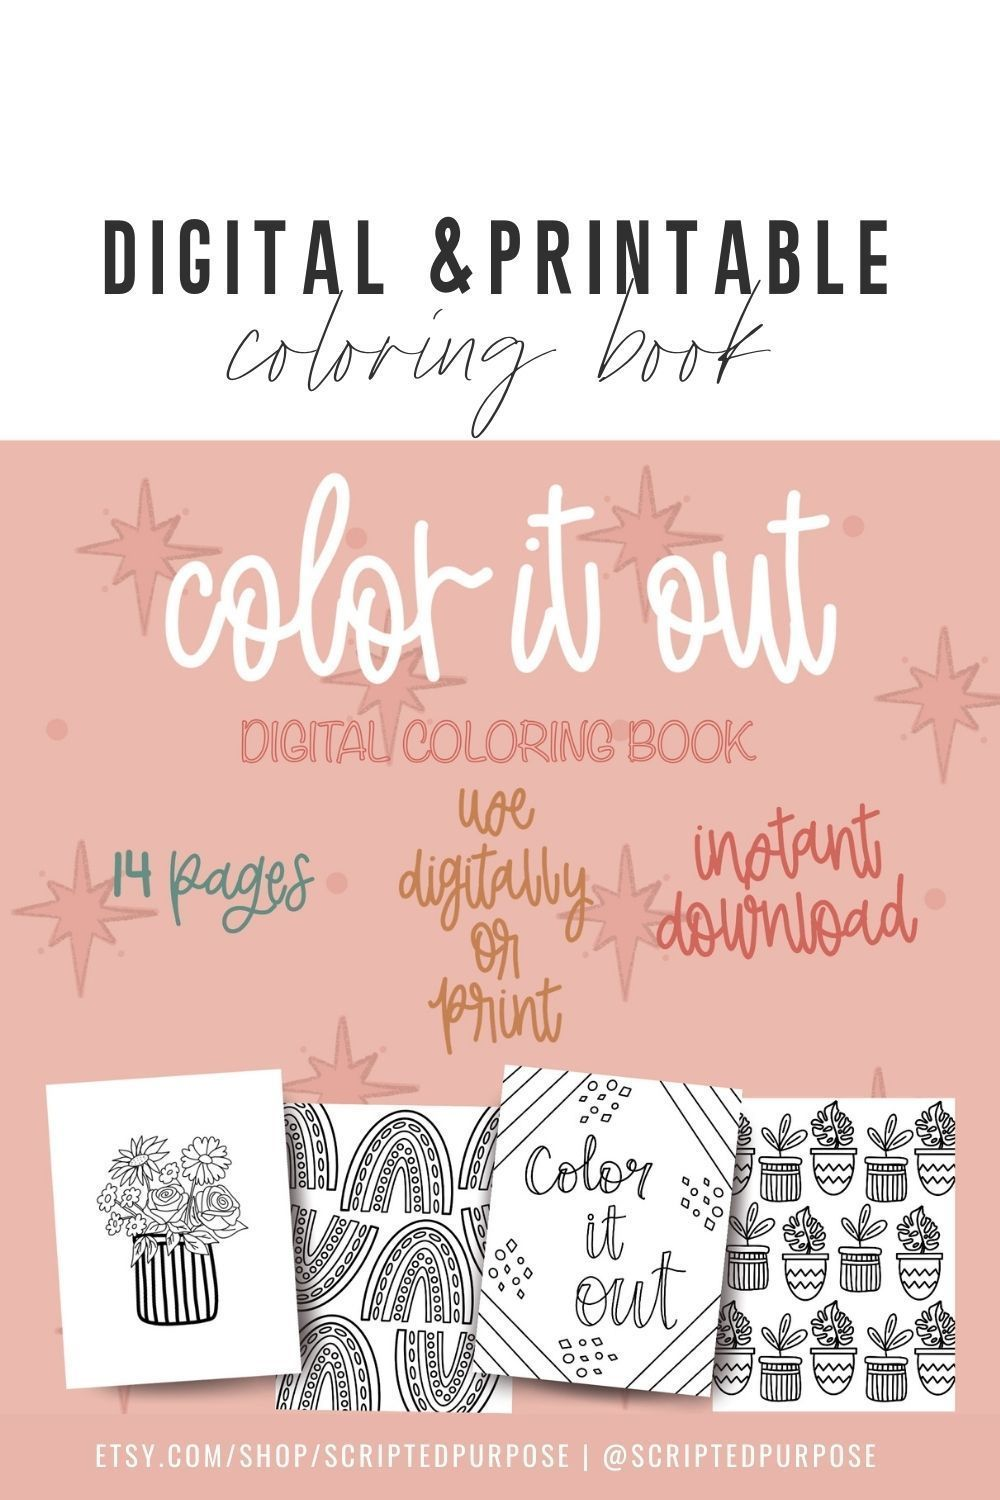 Digital Coloring Book Printable Coloring Book Procreate Etsy Printable Coloring Book Printable Coloring Coloring Books